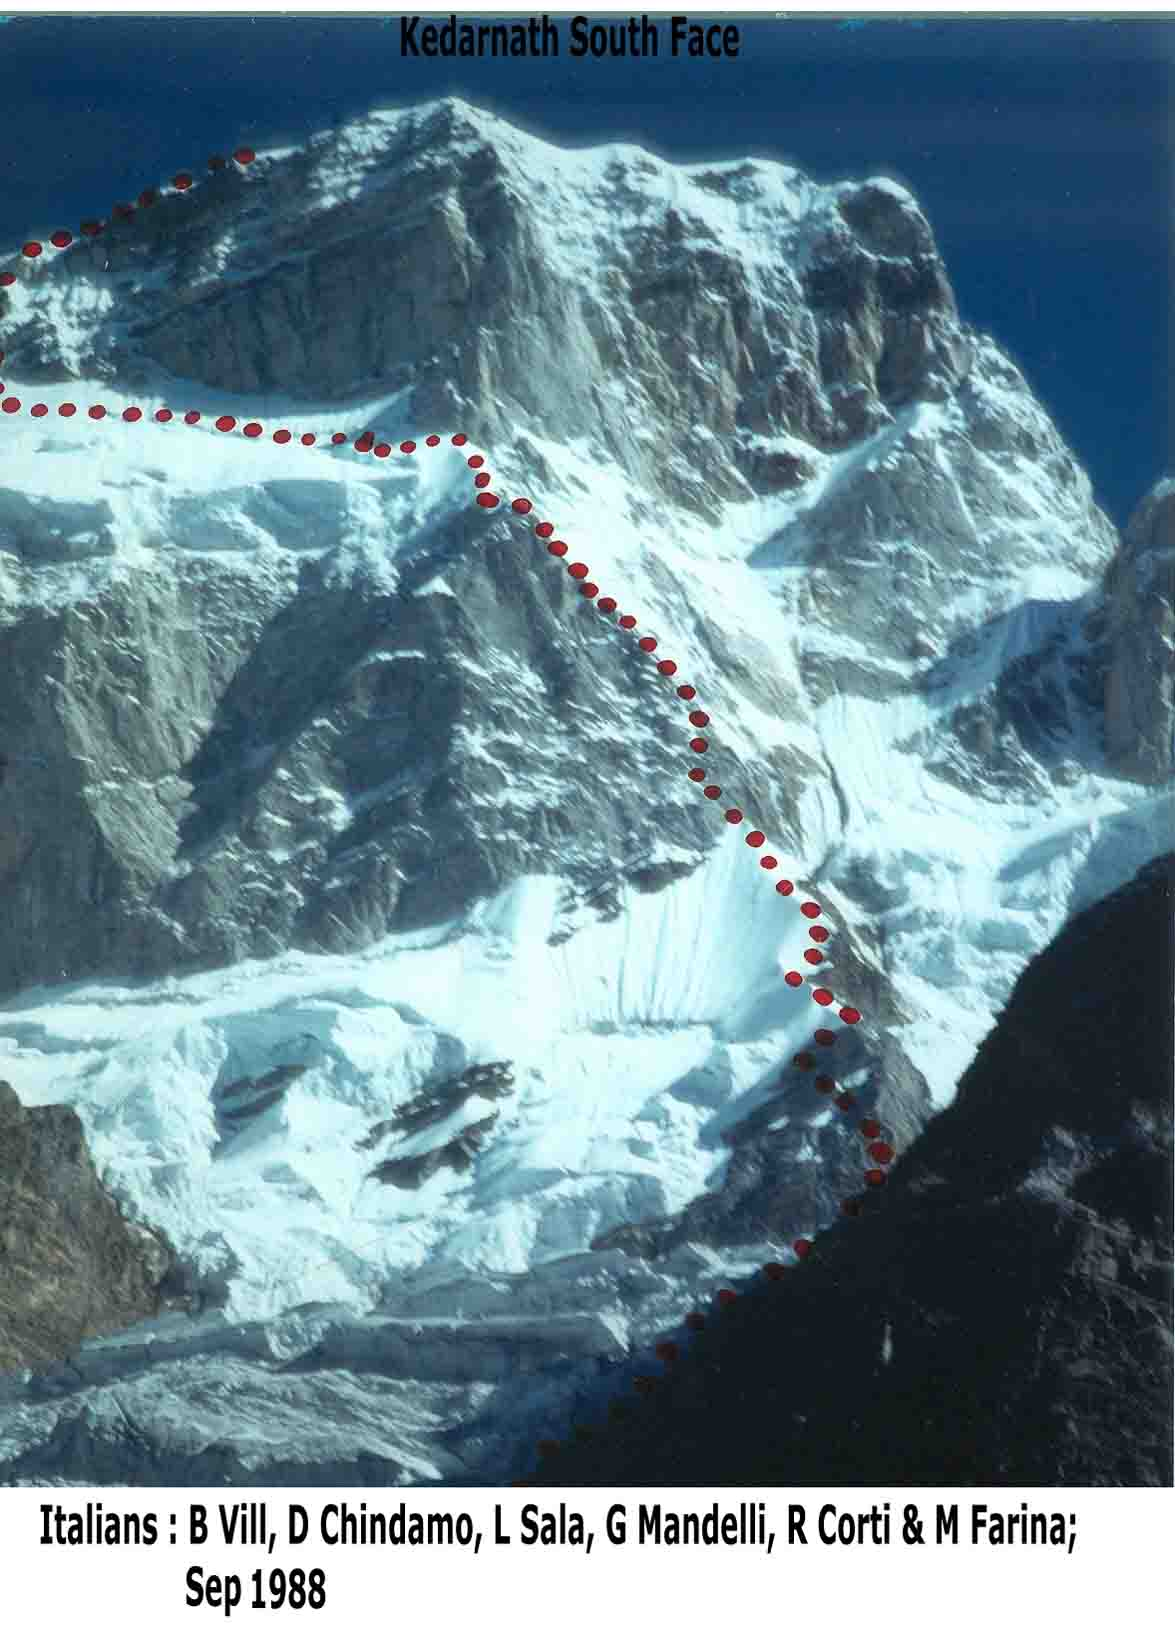 Kedarnath South Face route